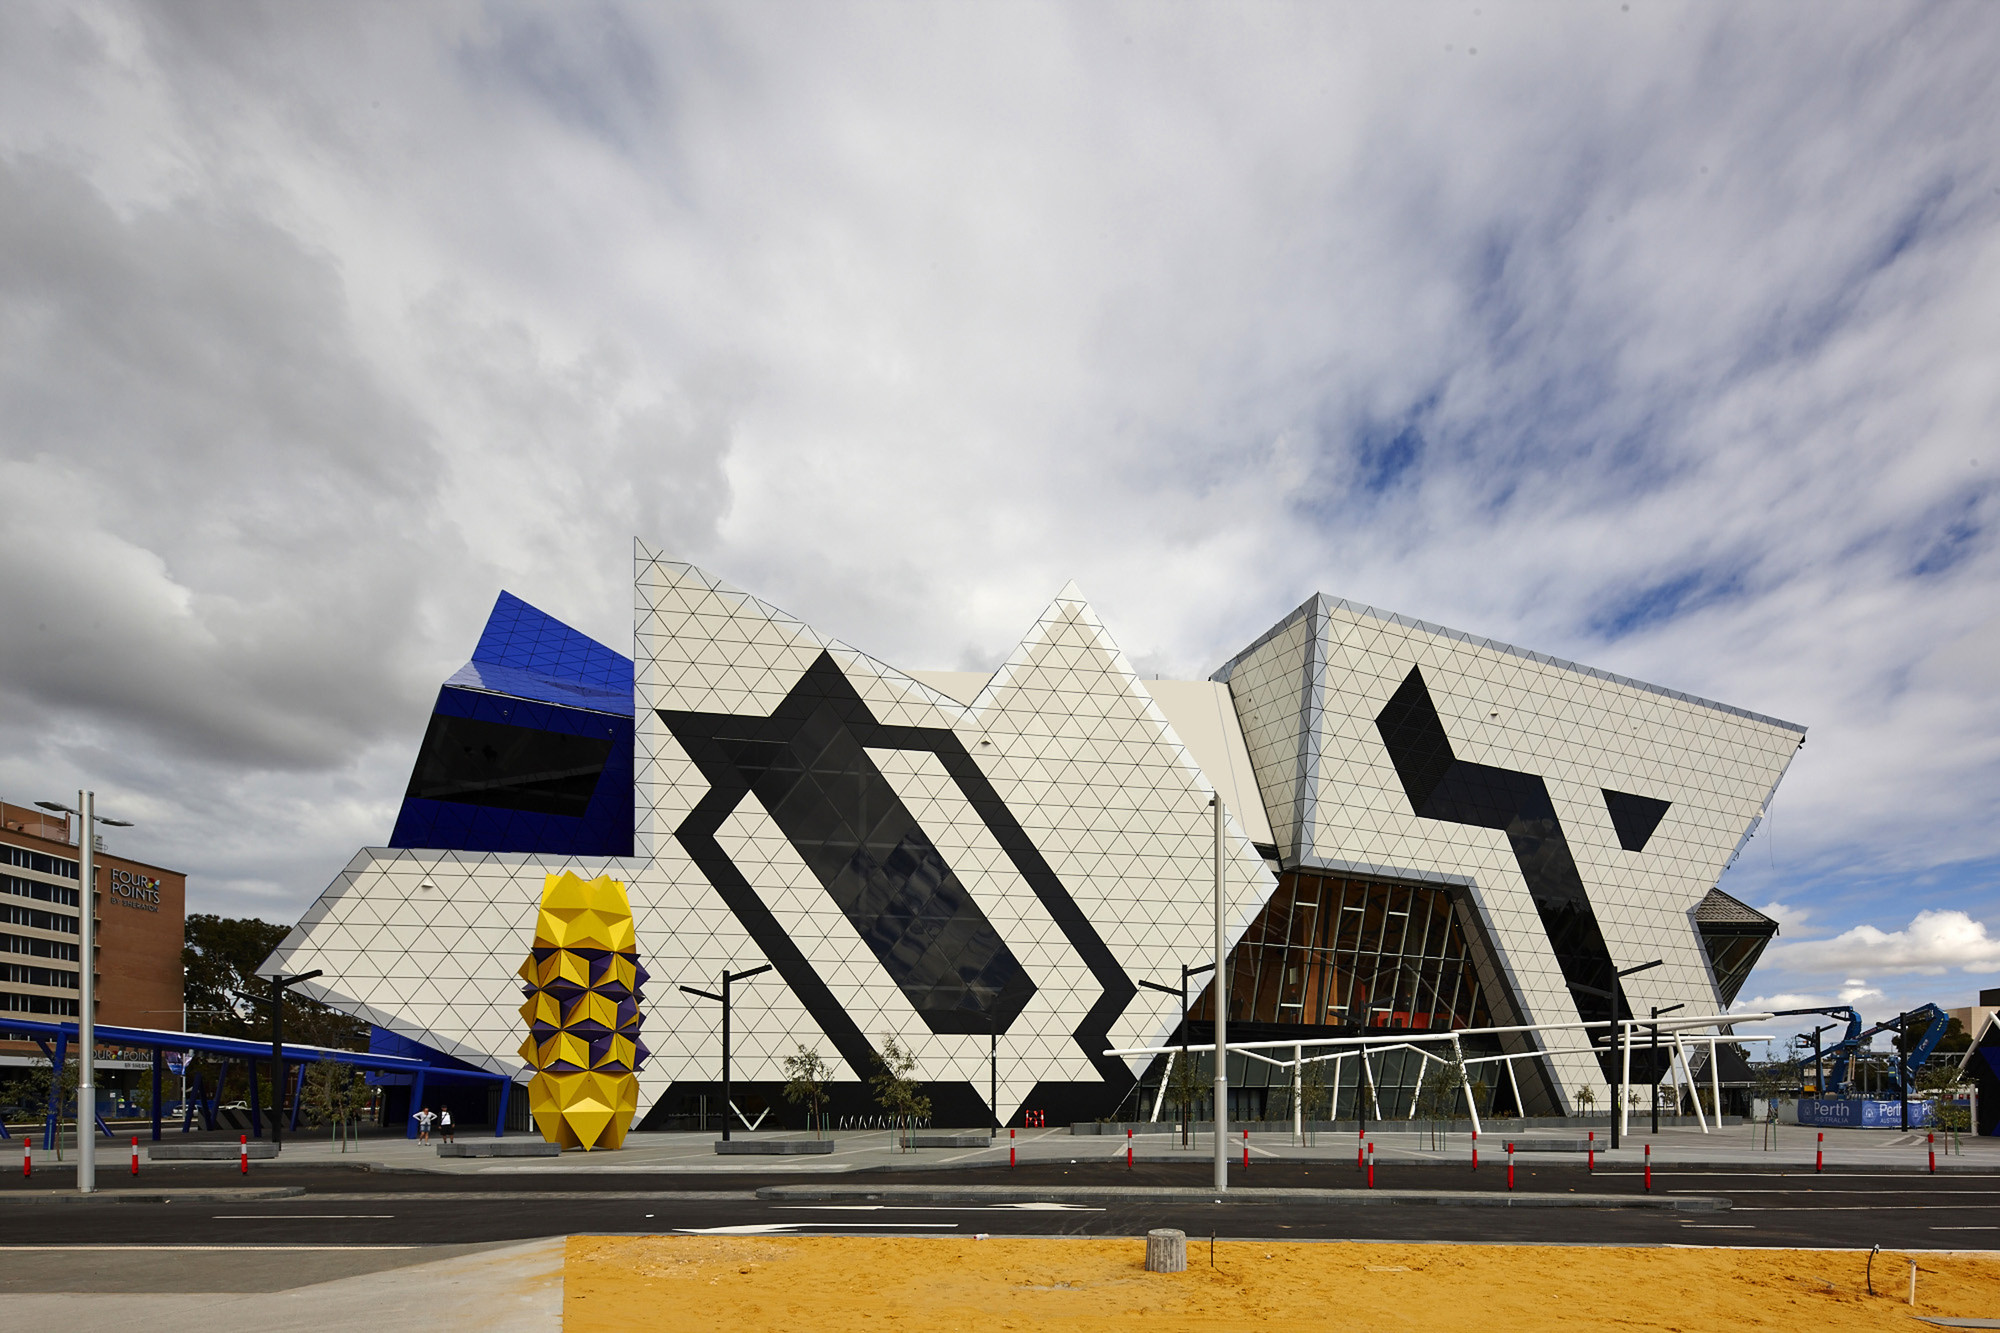 Gallery of perth arena arm architecture ccn 2 for Architecture firms perth